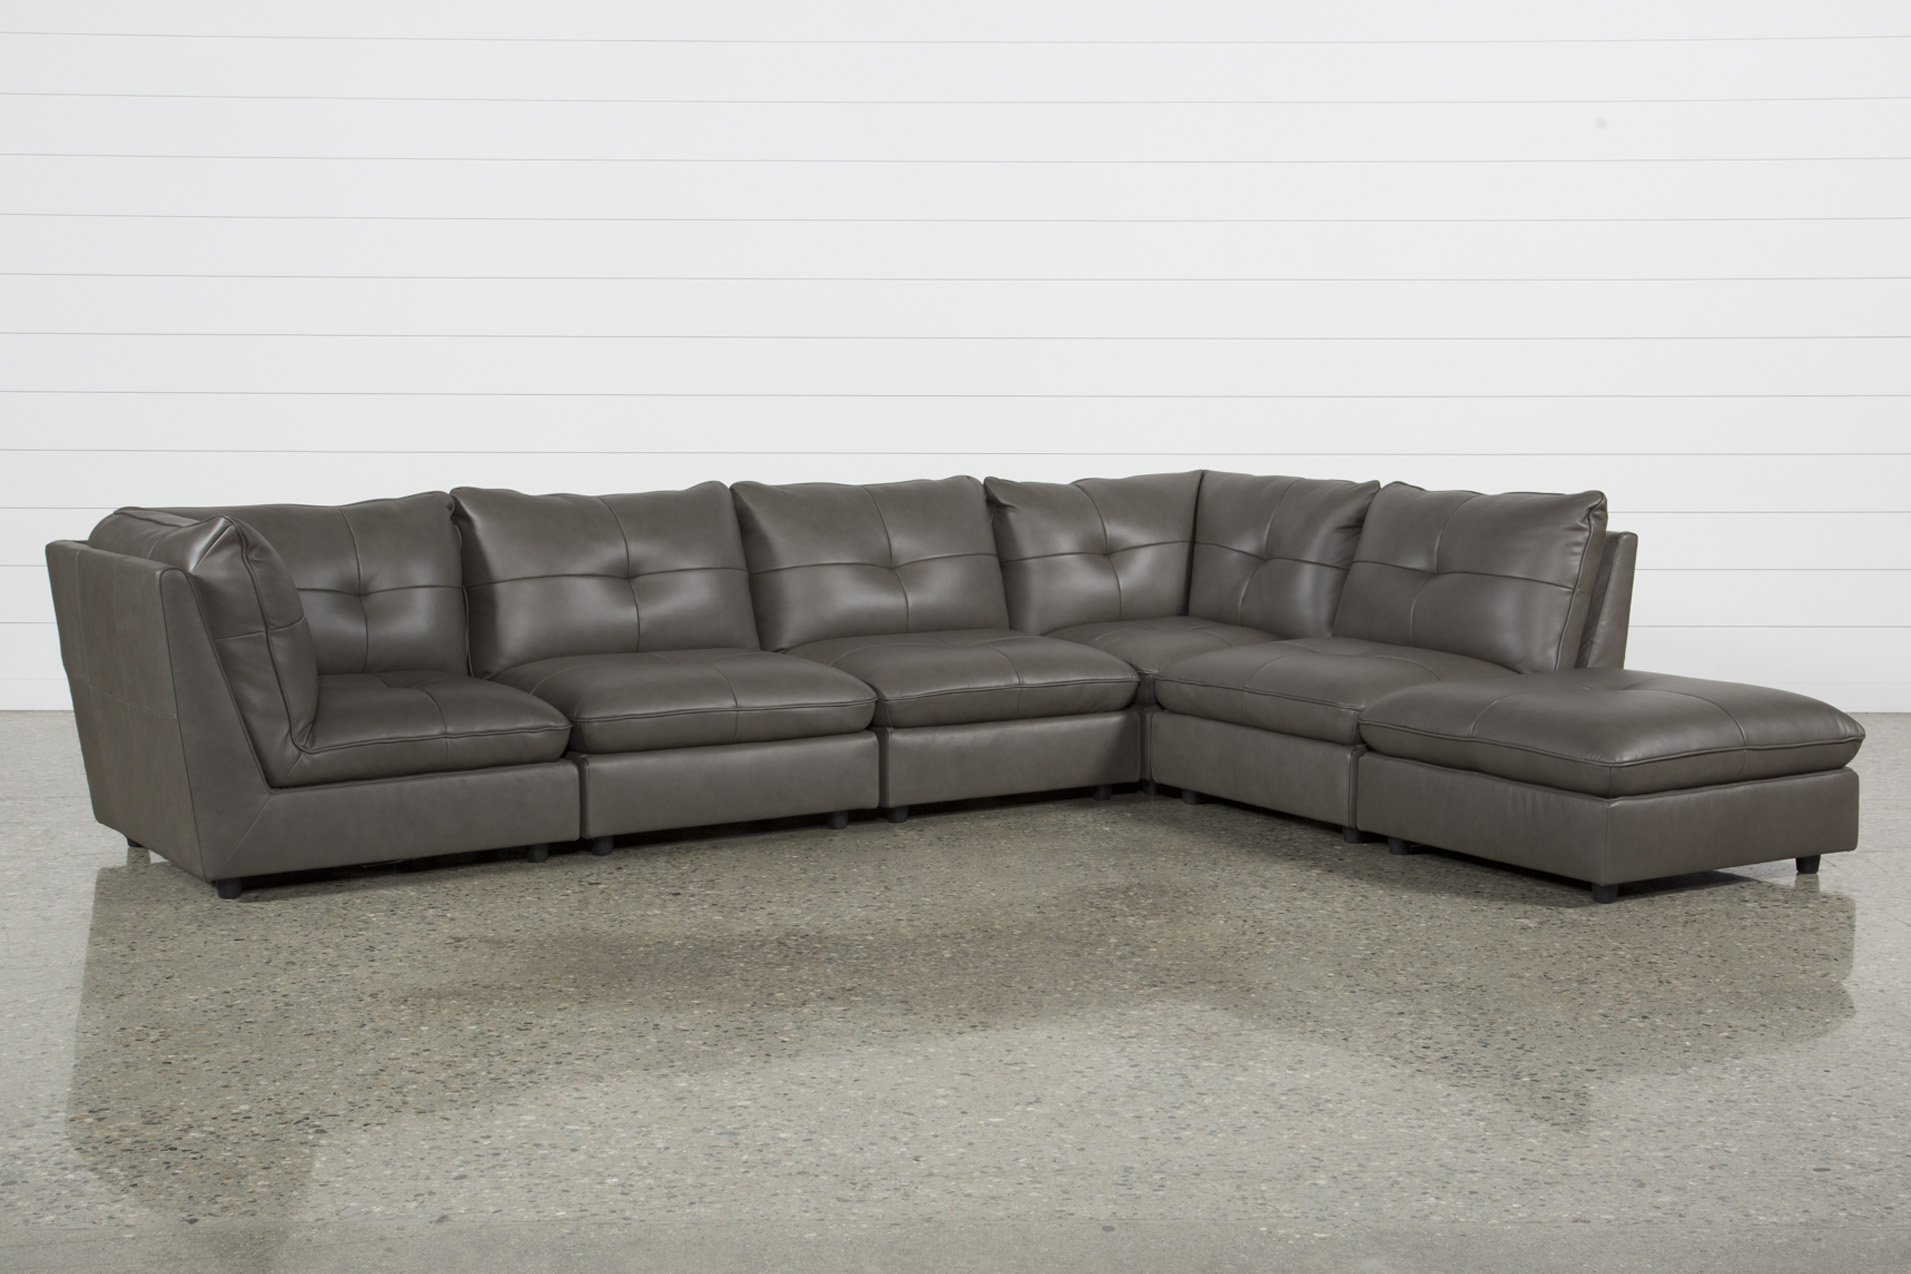 Charmant Adele Grey 5 Piece Sectional With 3 Armless Chairs And Ottoman   360